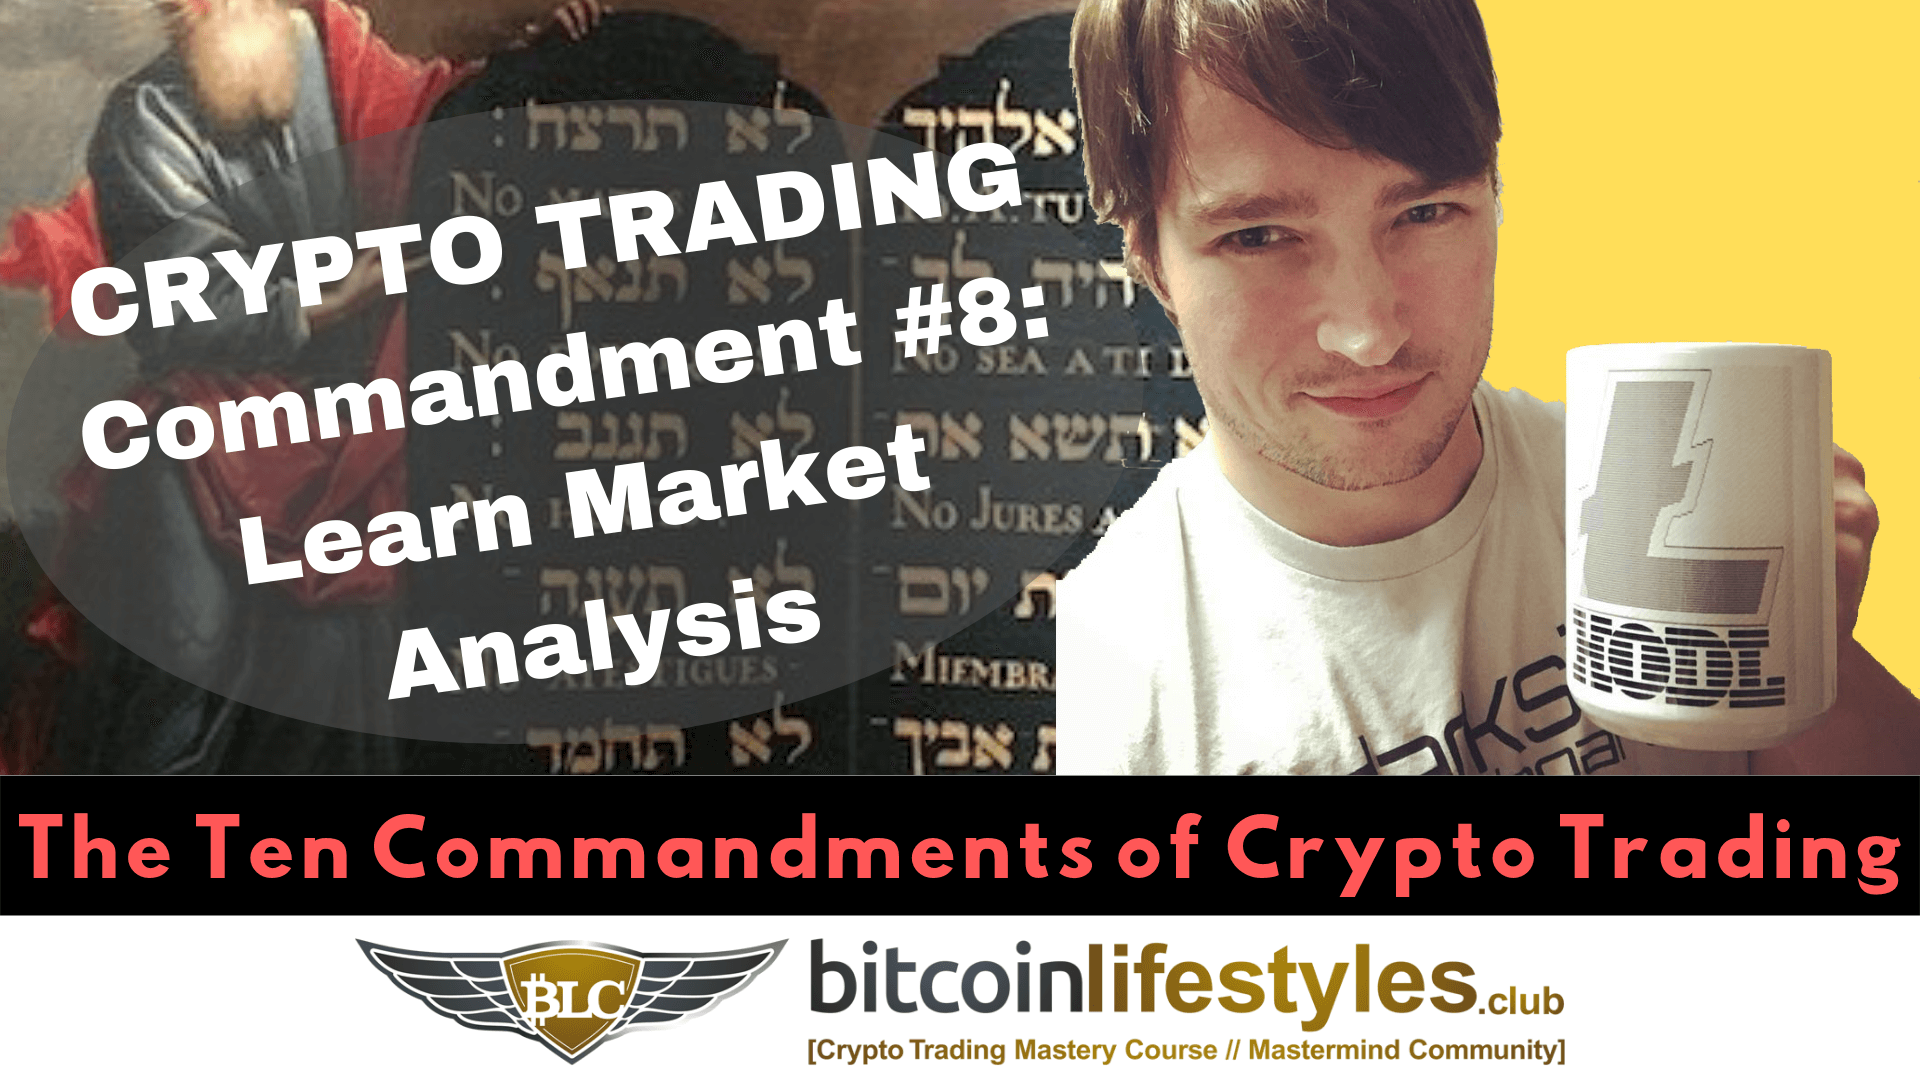 8th Crypto Trading Commandment: Thou Shalt Learn Crypto Market Analysis